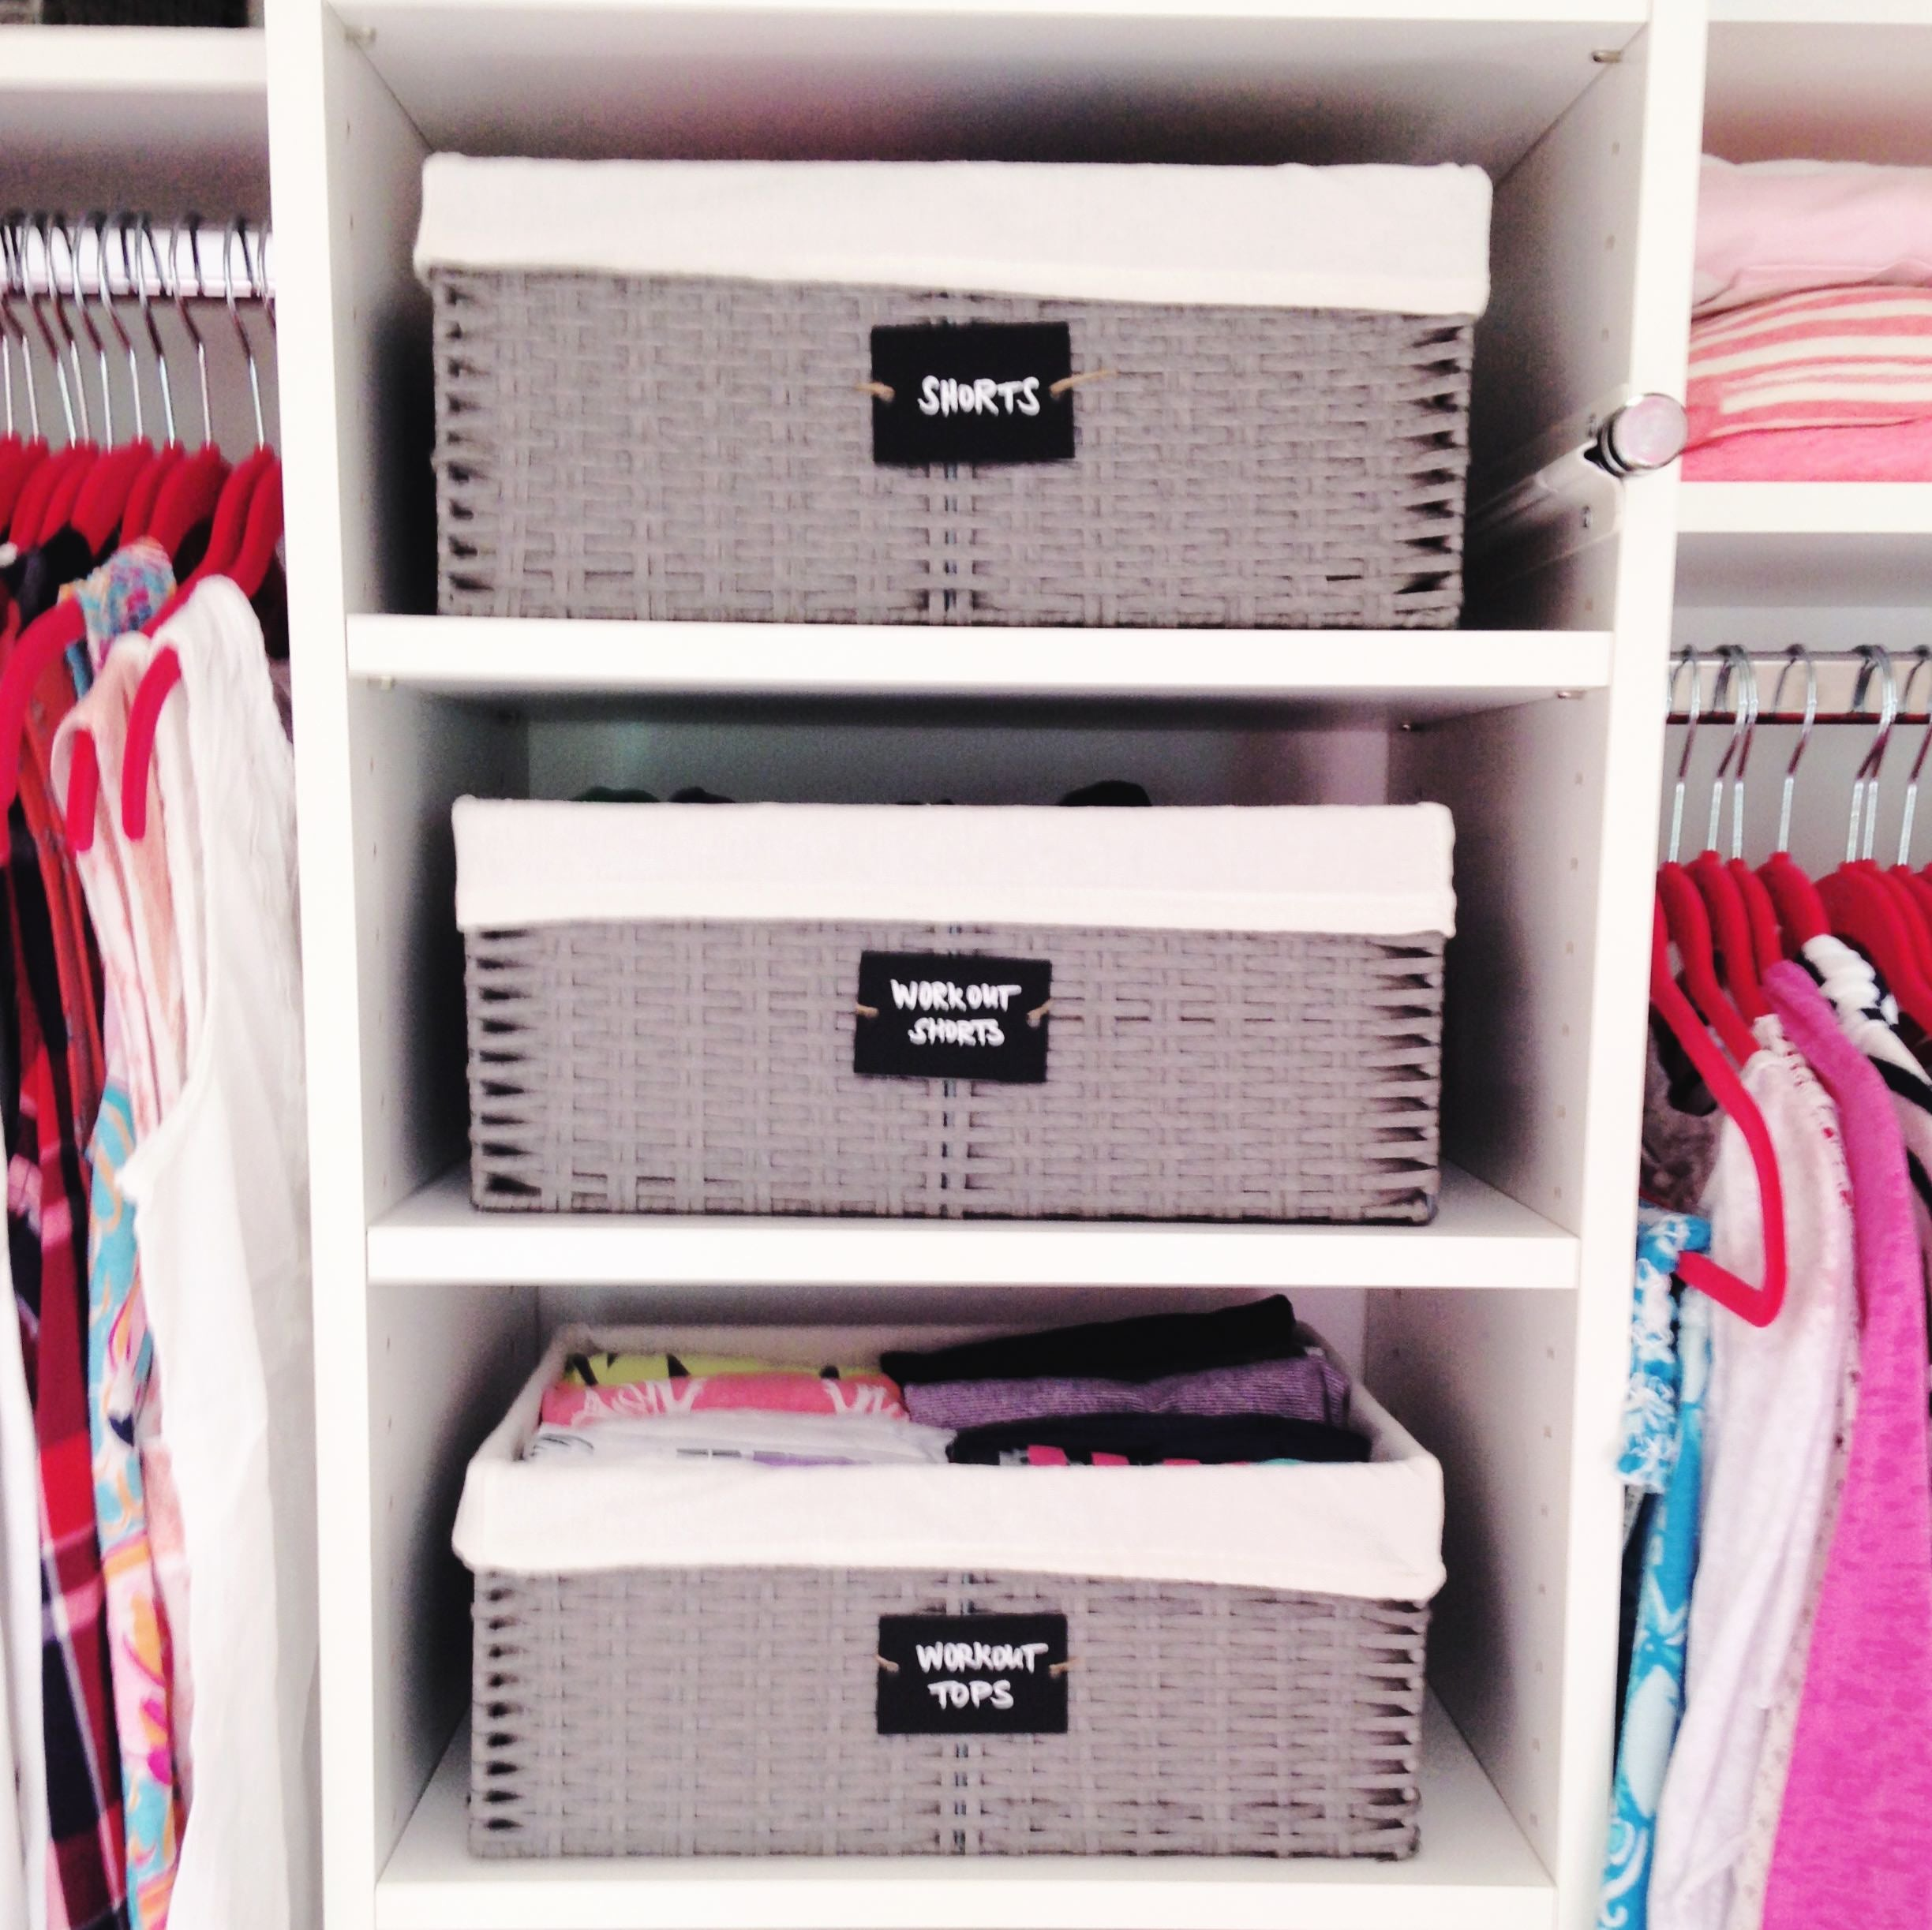 baskets, organizing, neat method, professional organizers, home organizing